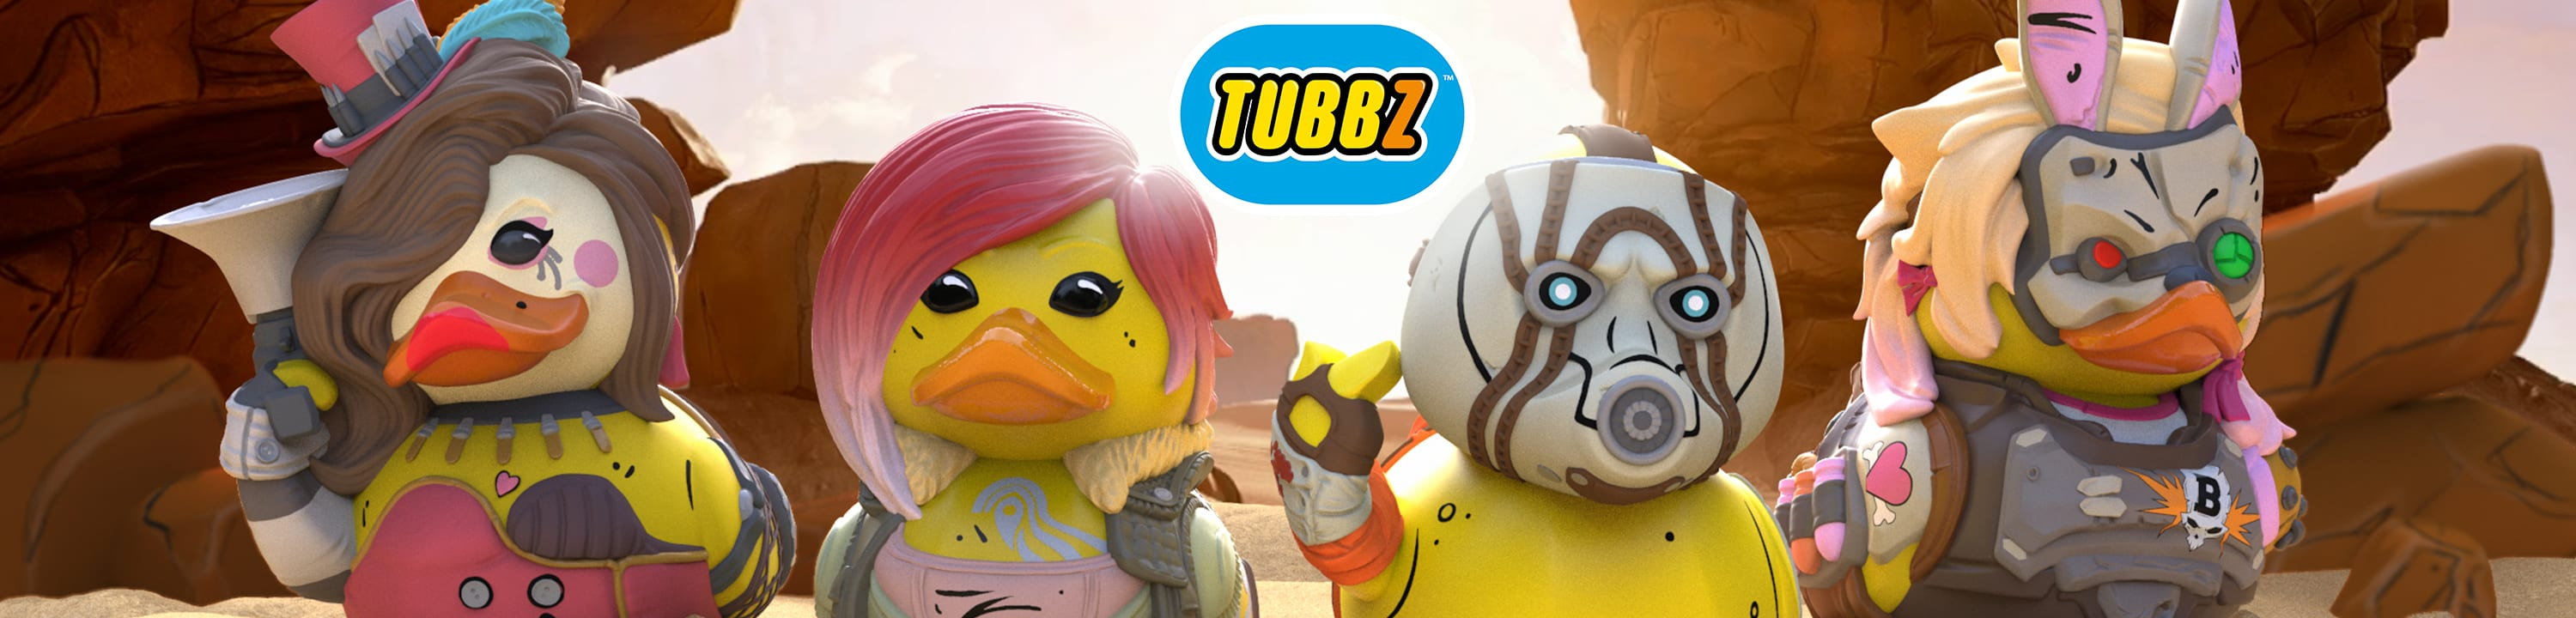 Tubbz! Cosplaying Ducks